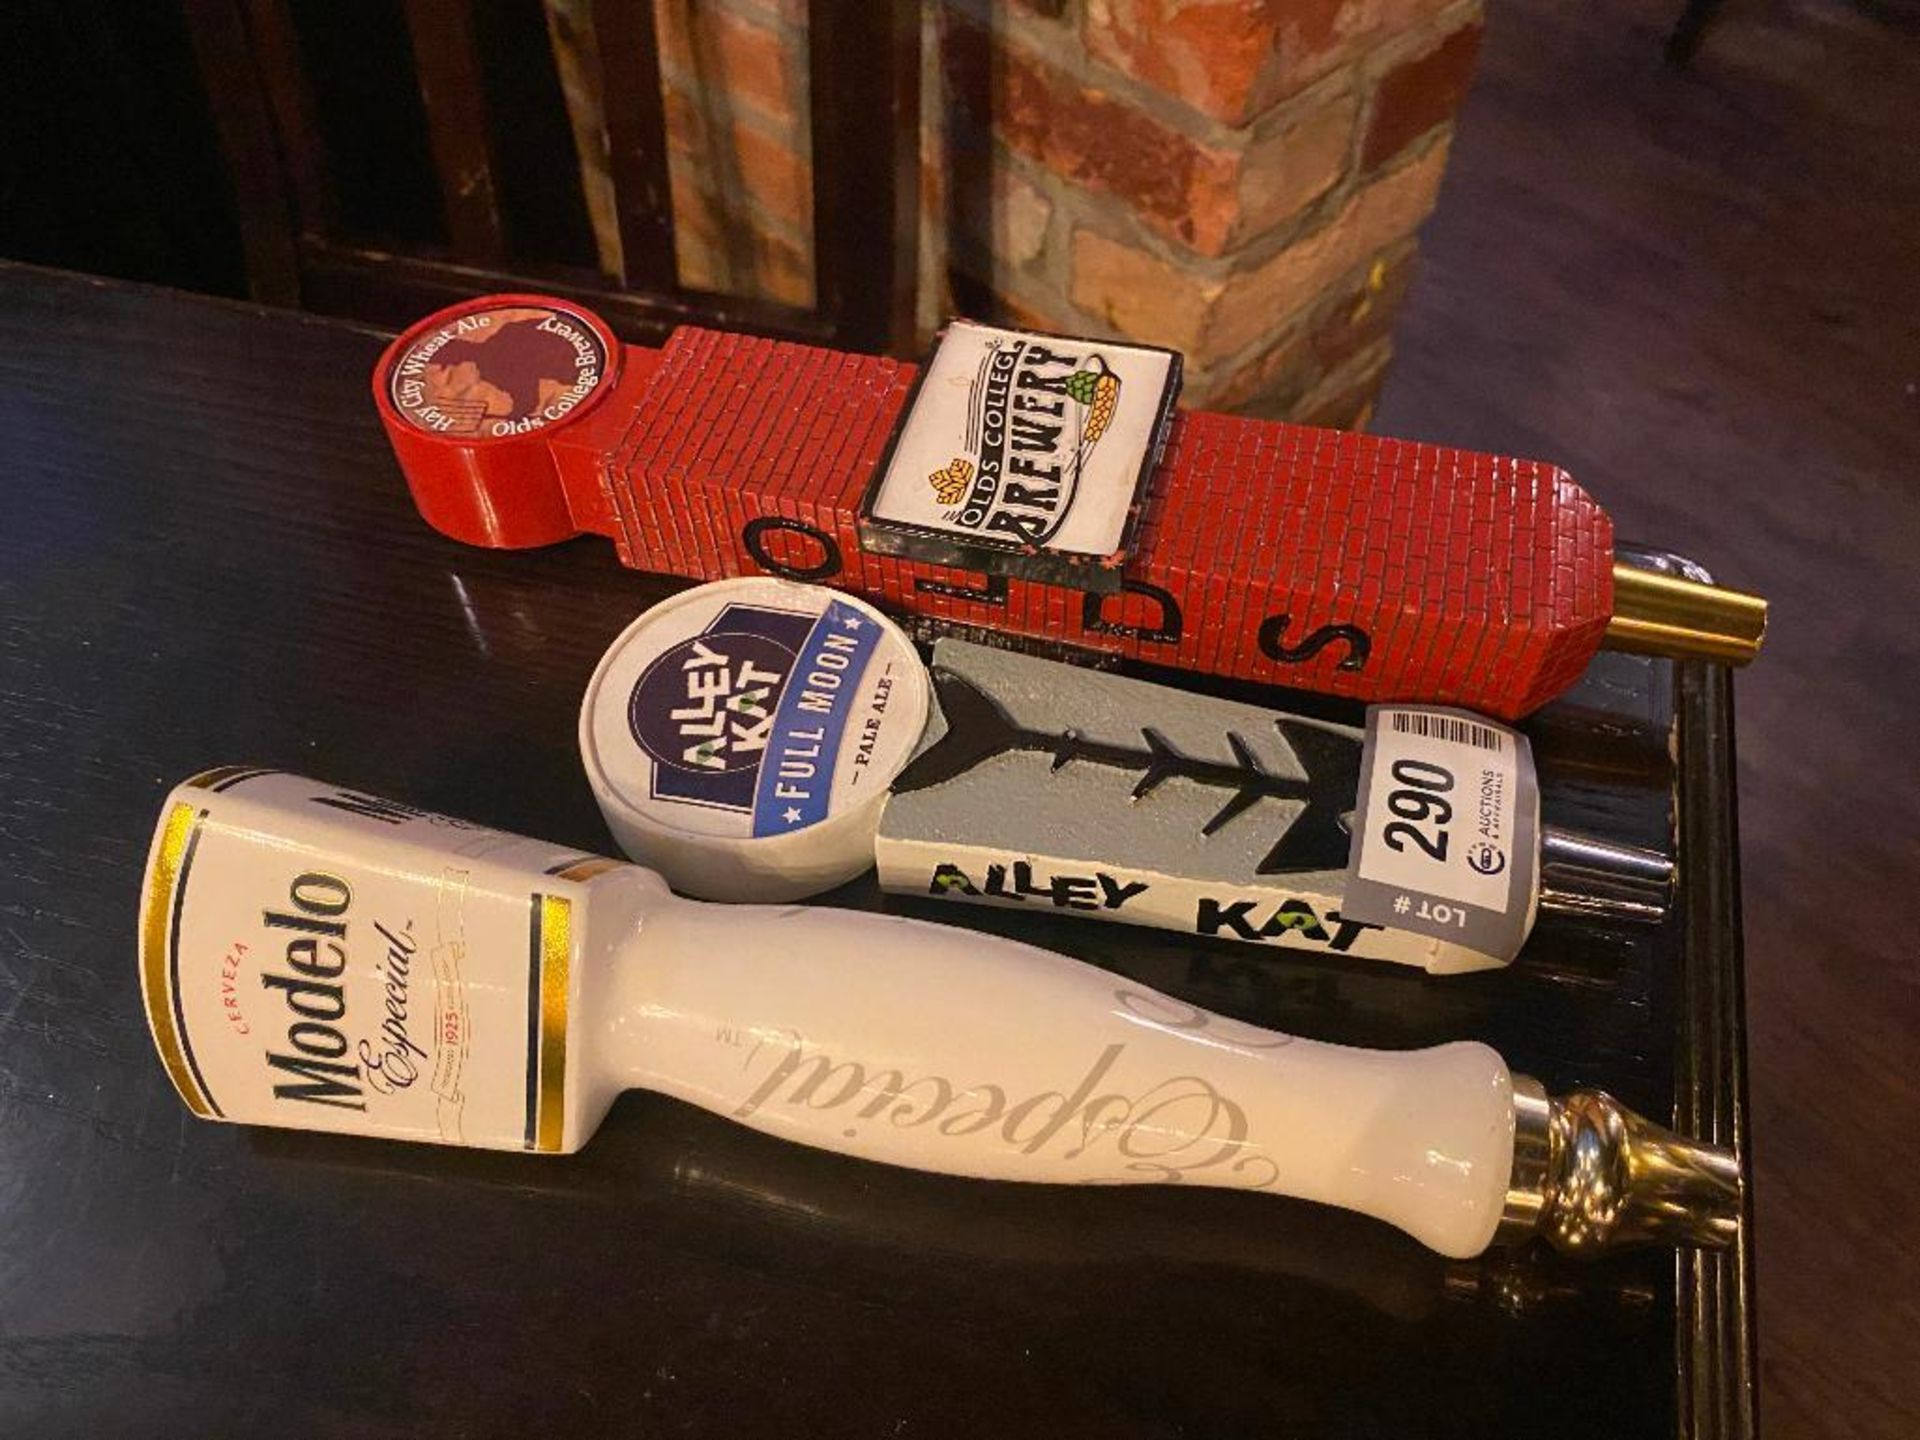 LOT OF (3) ASSORTED BEER TAPS - Image 2 of 2